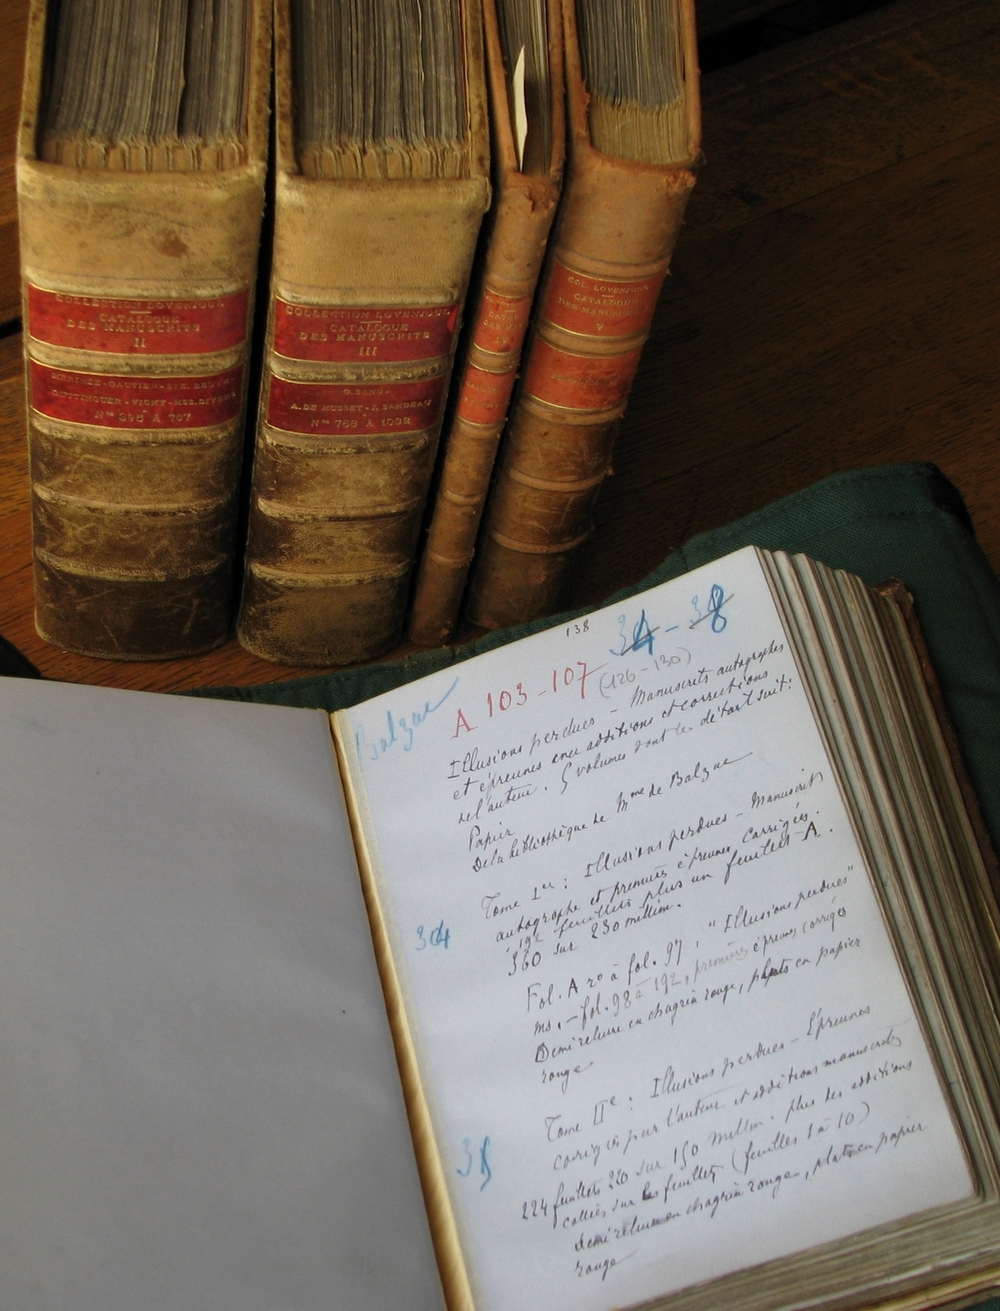 Catalogue des manuscrits. © Bibliothèque de l'Institut de France / Olivier Thomas